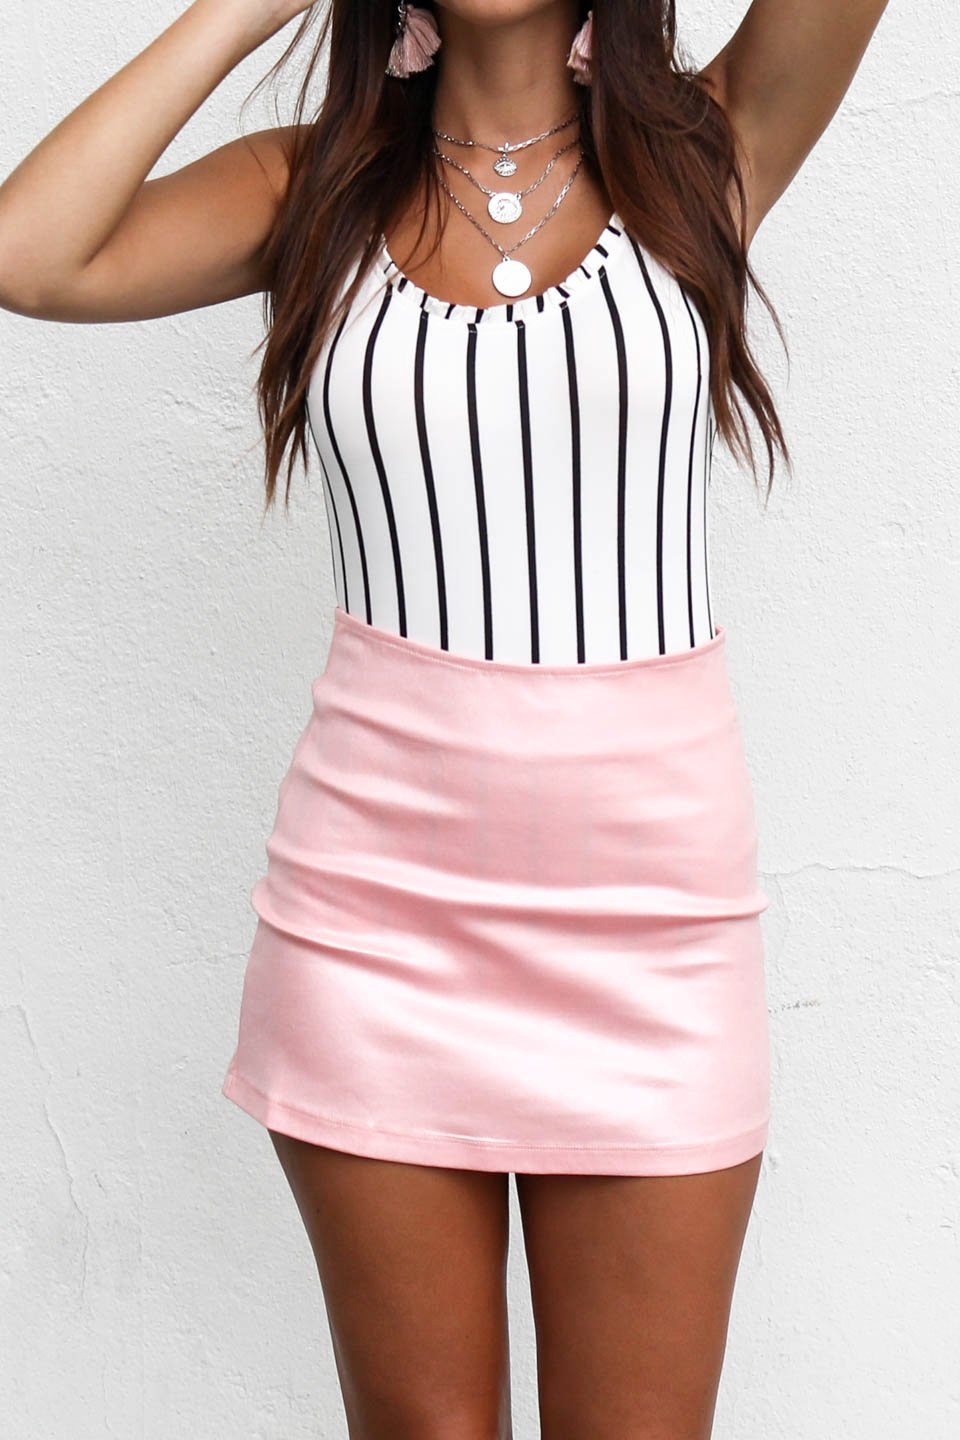 More Dancing Shimmer Baby Pink Skirt